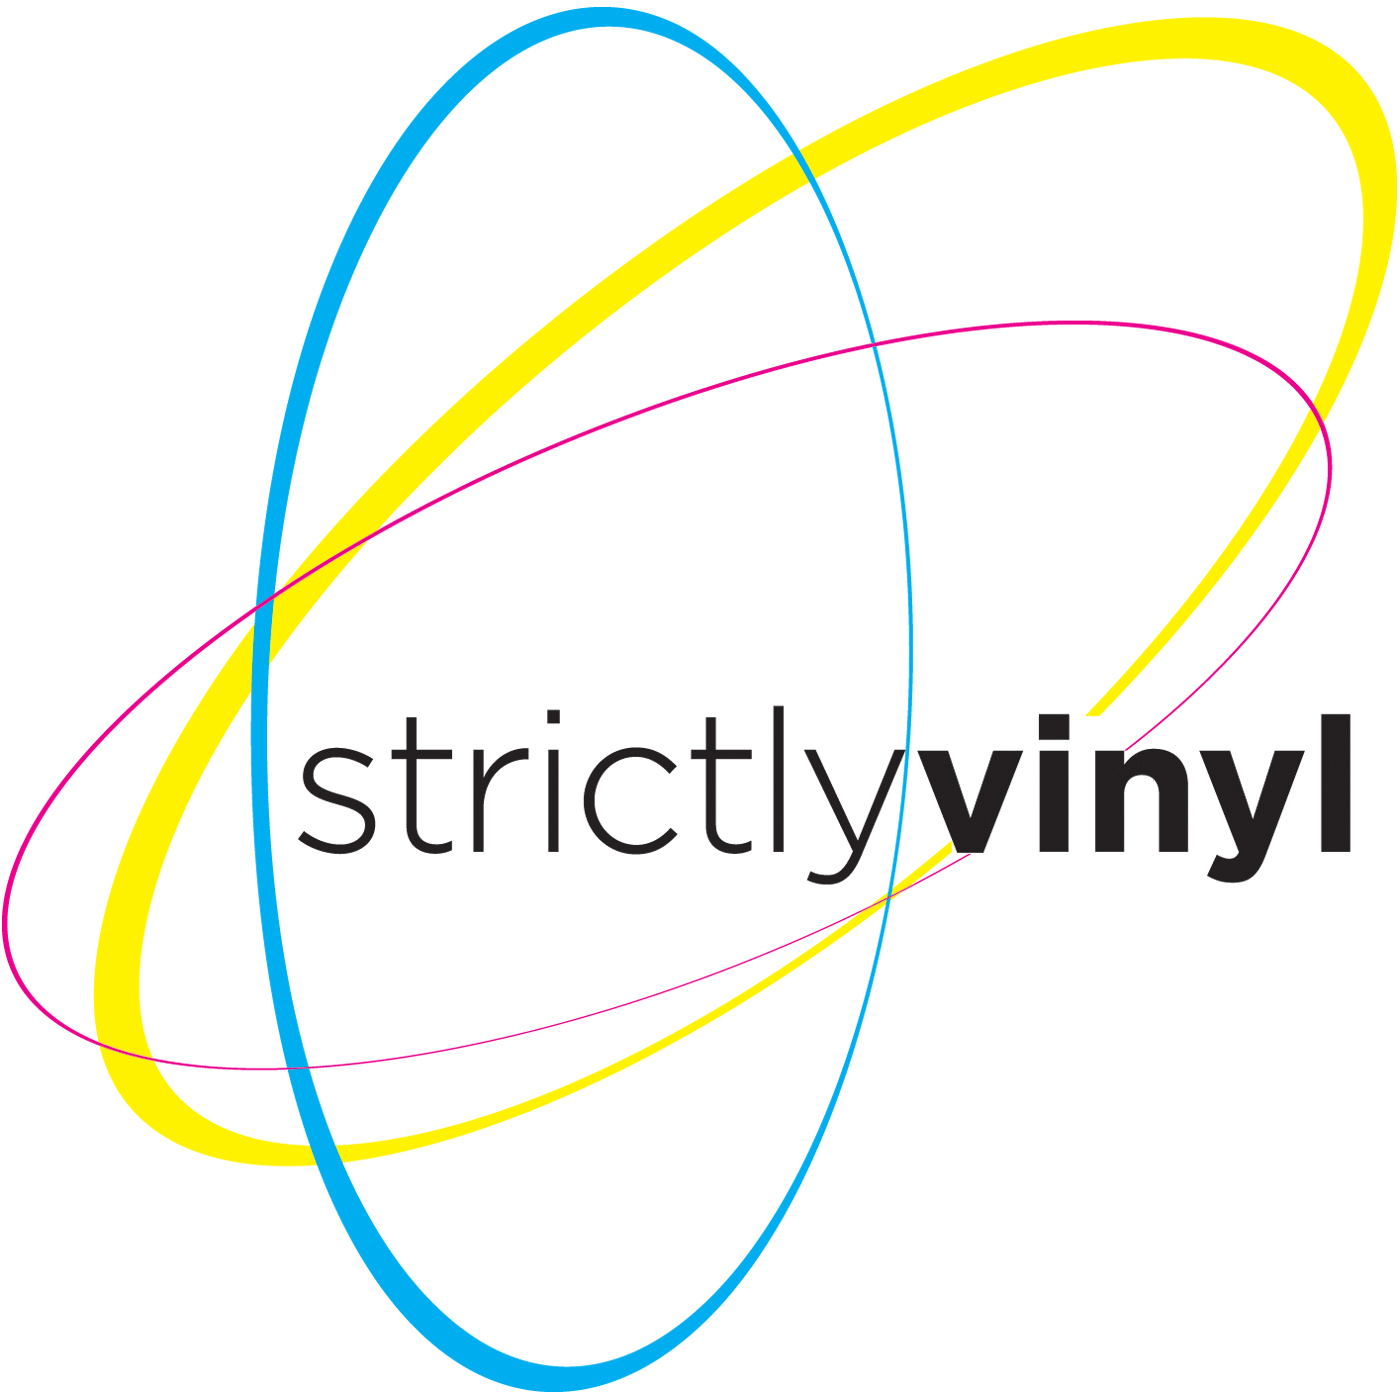 Strictly Vinyl Podcast